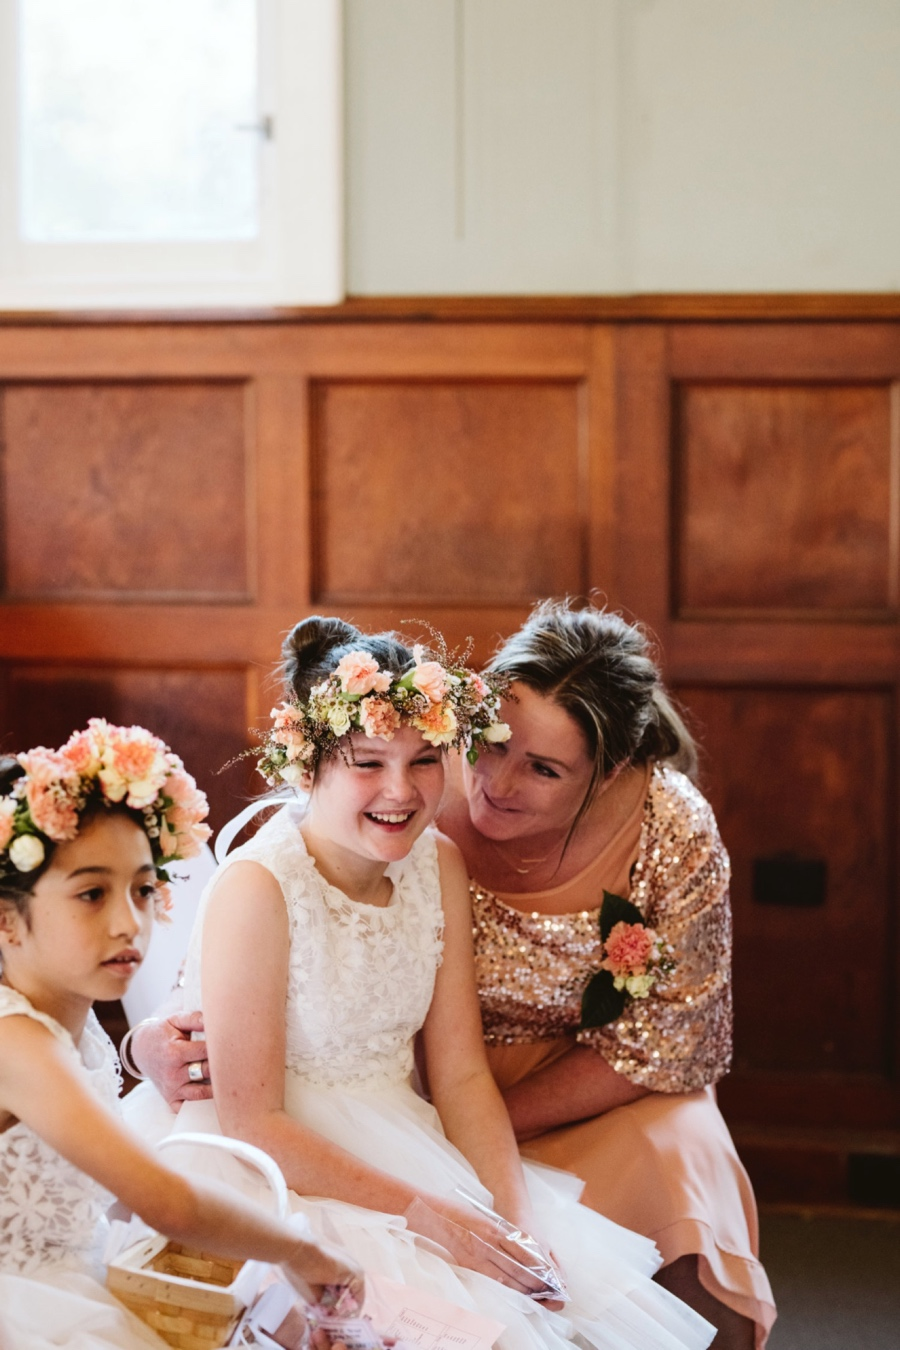 076_Melbourne Wedding Photographer Ashleigh Haase76.jpg